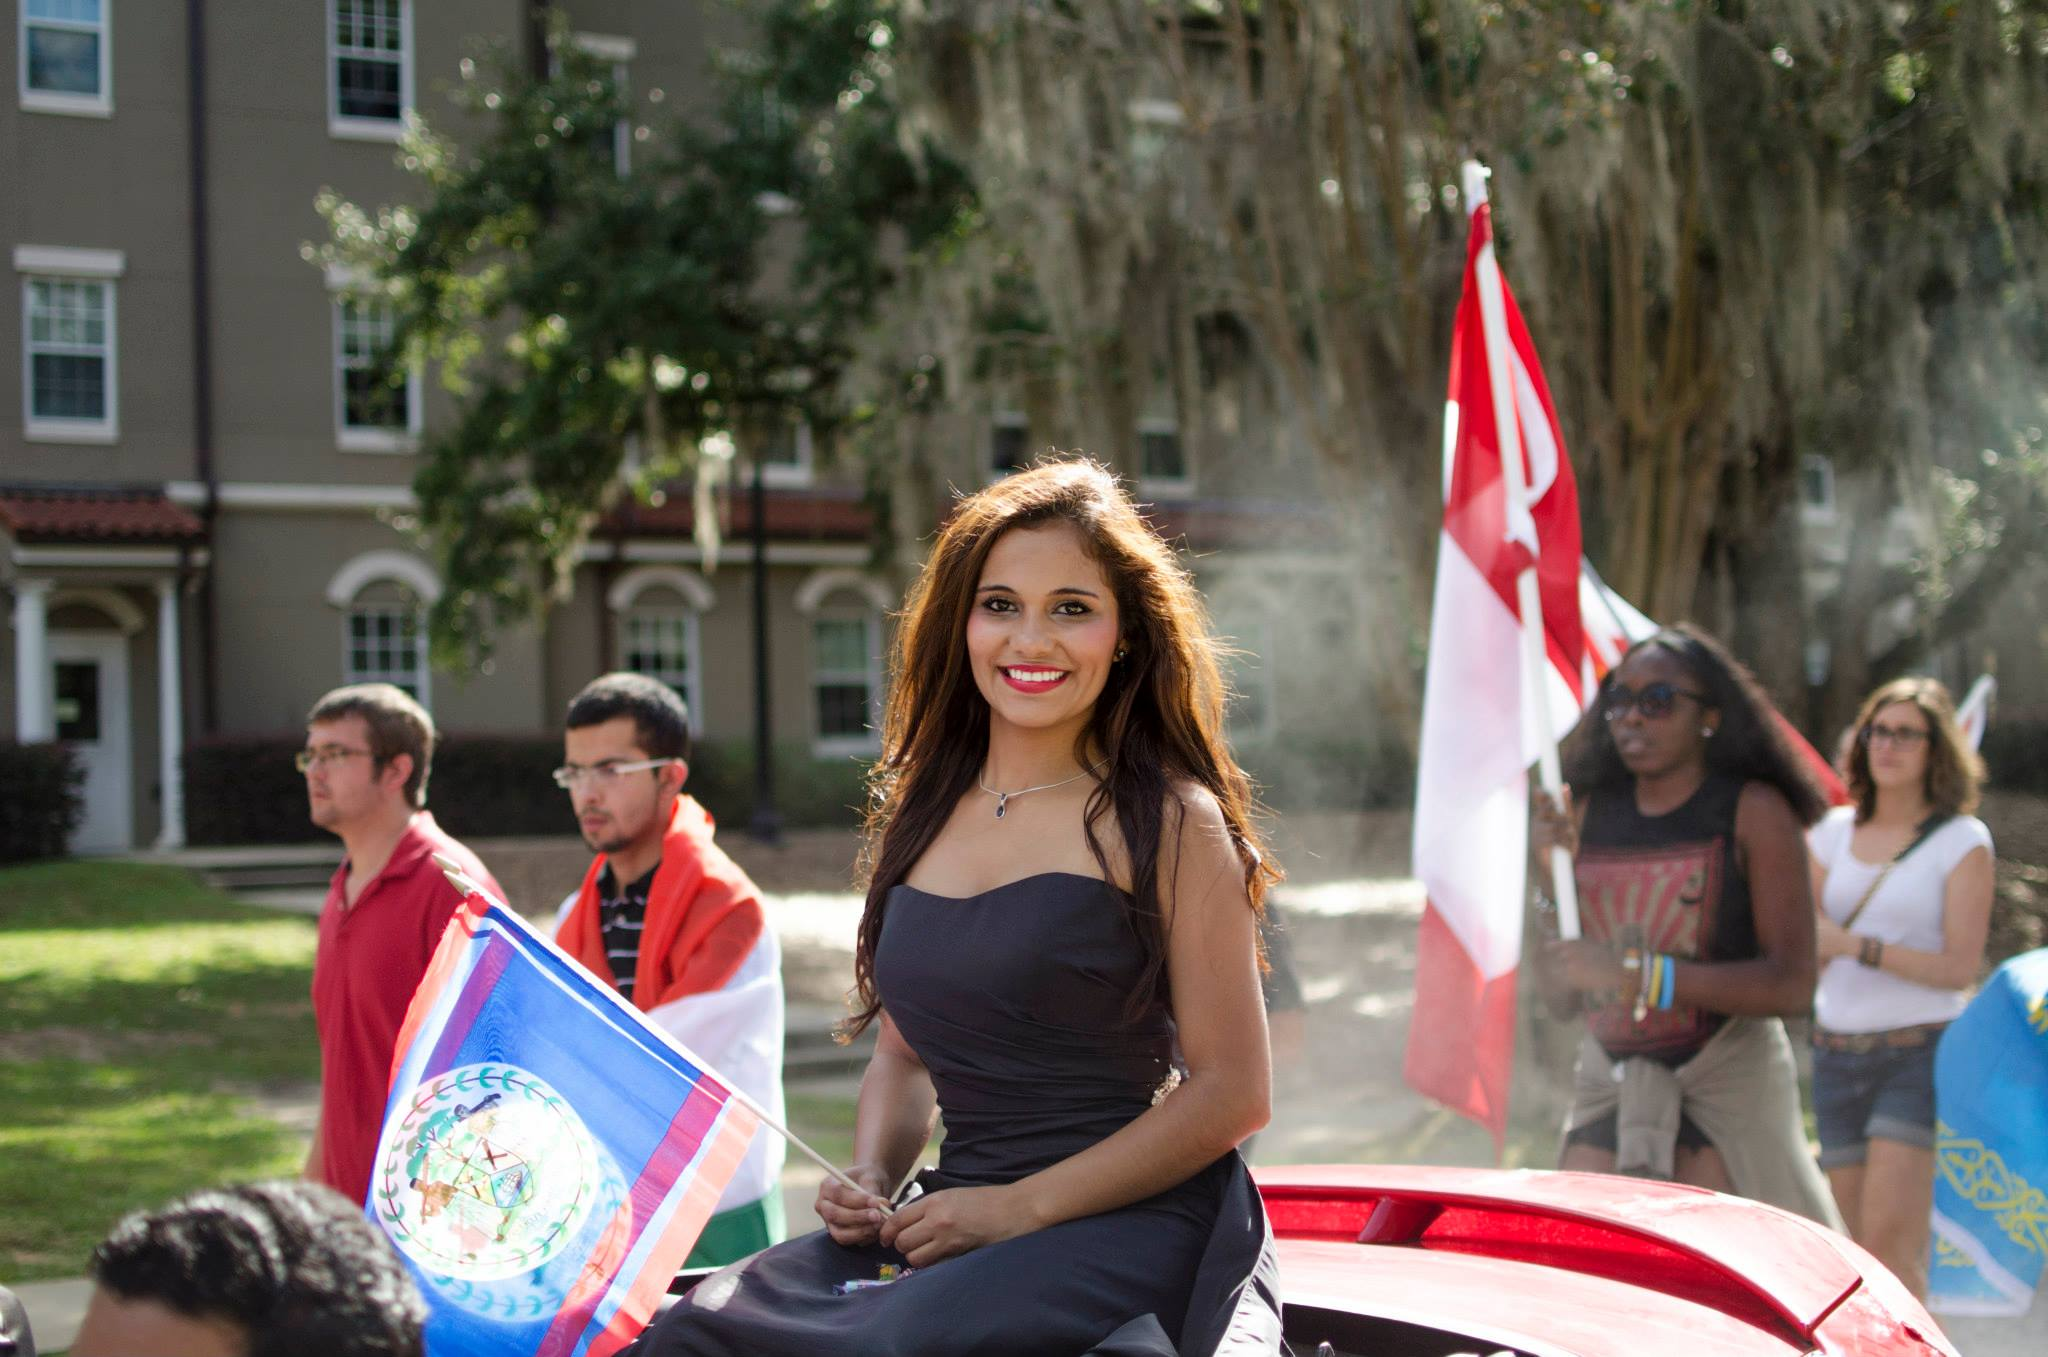 SIS Homecoming Queen candidate Dilcia Turcios from Honduras!